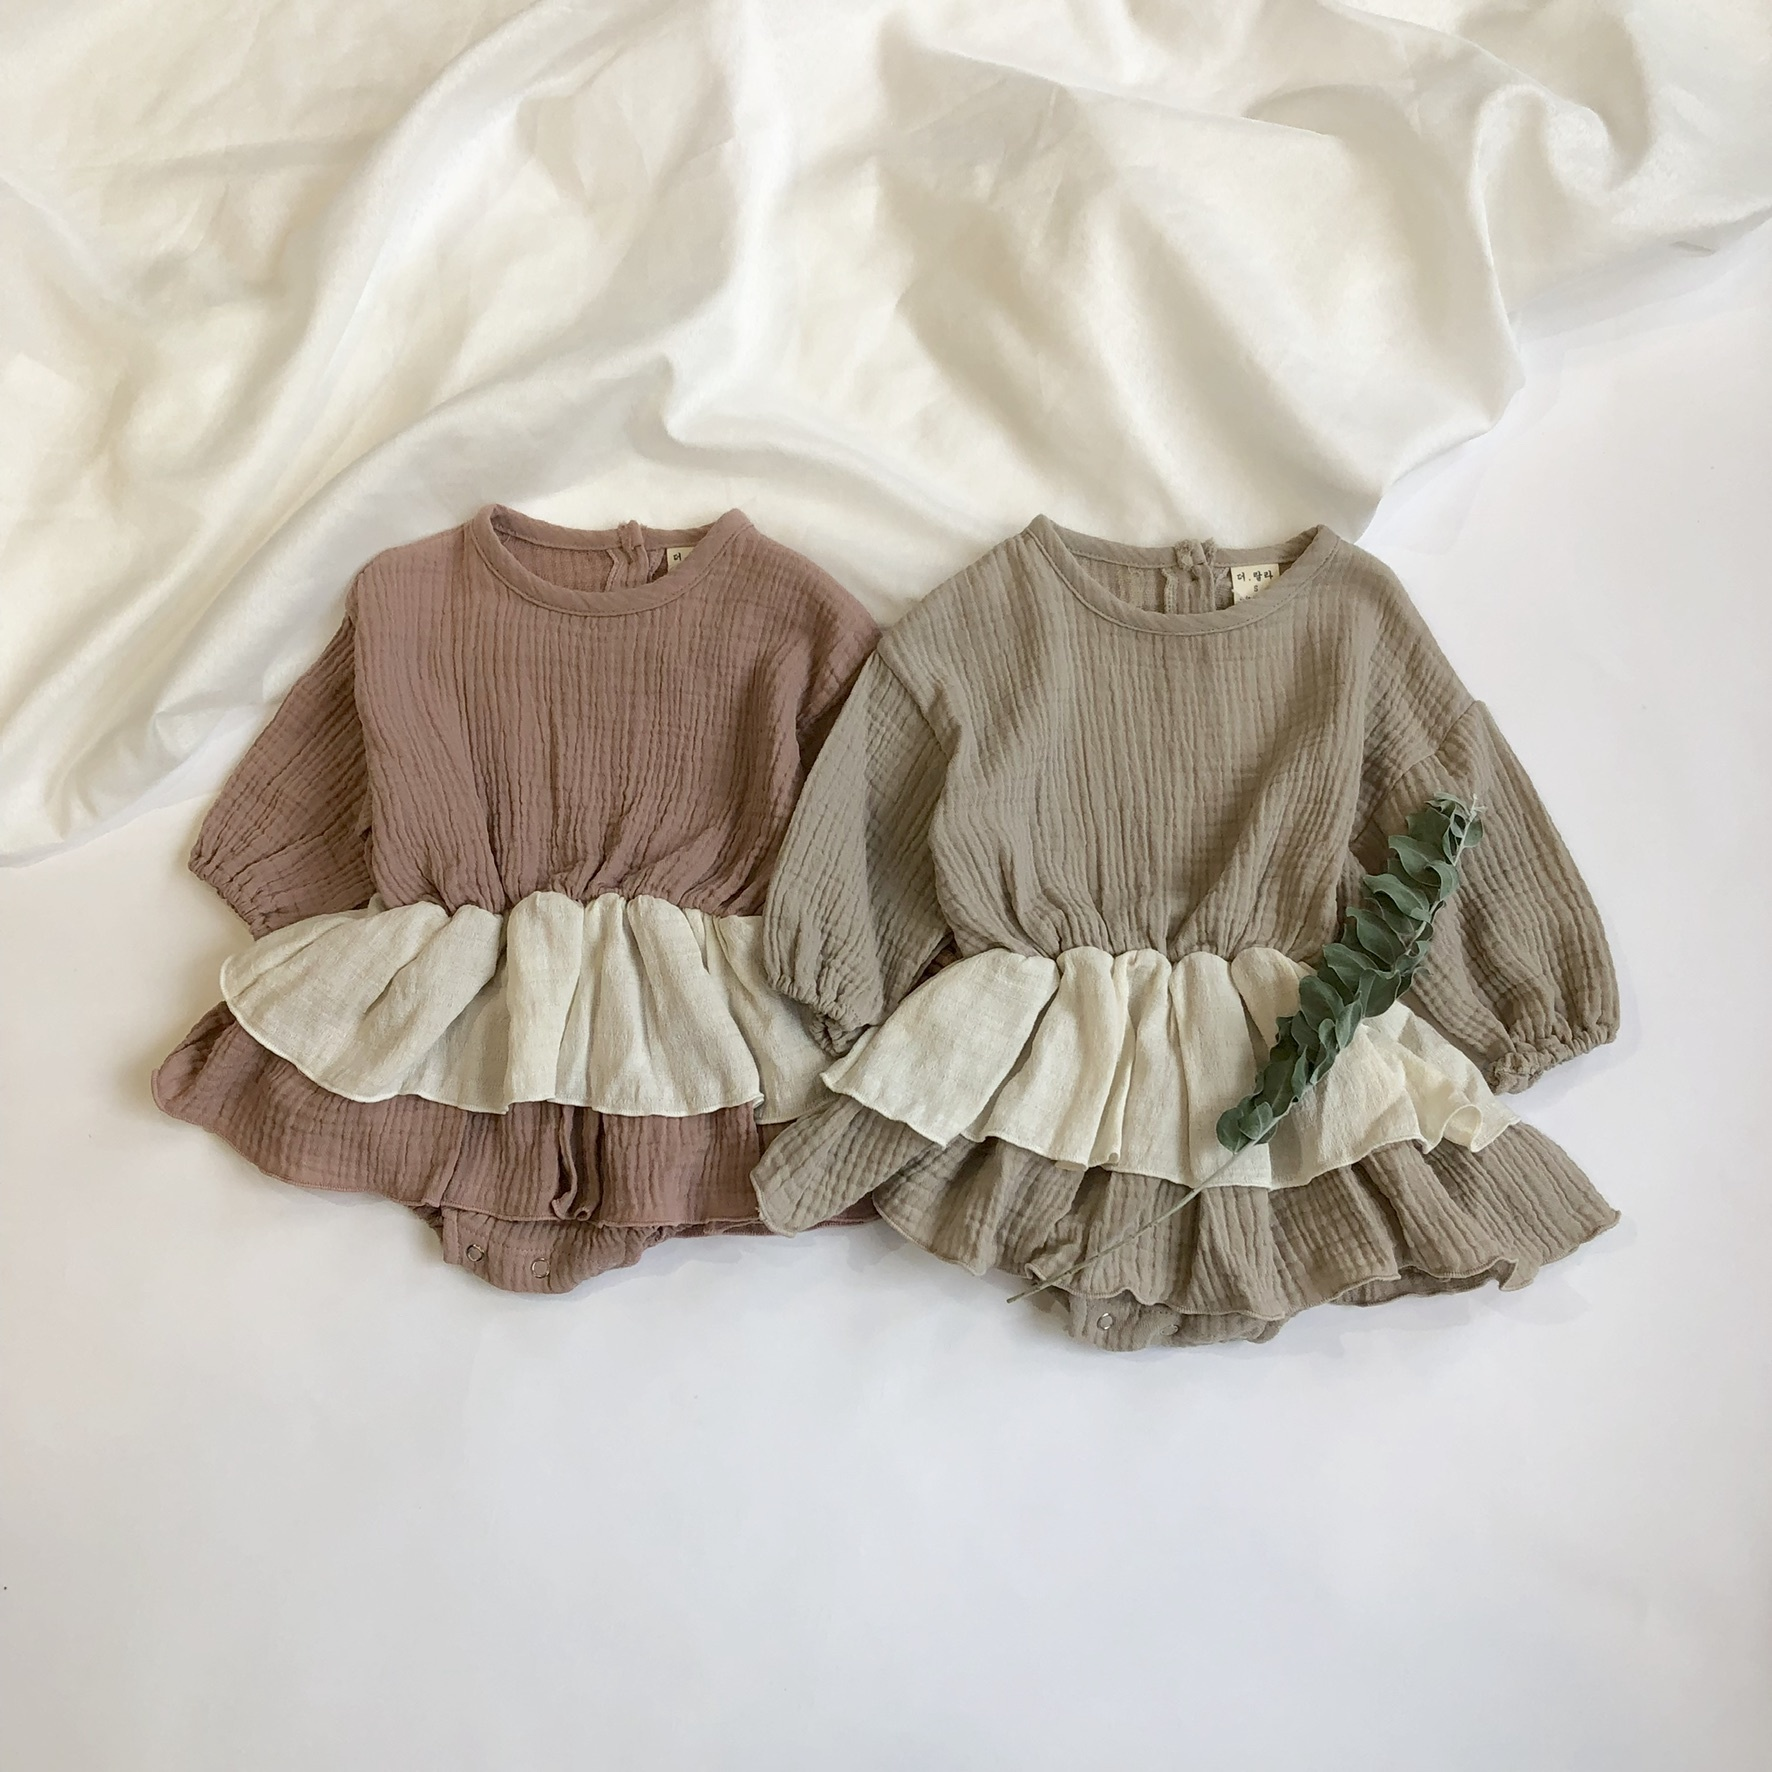 《 128 》Waffle frill rompers